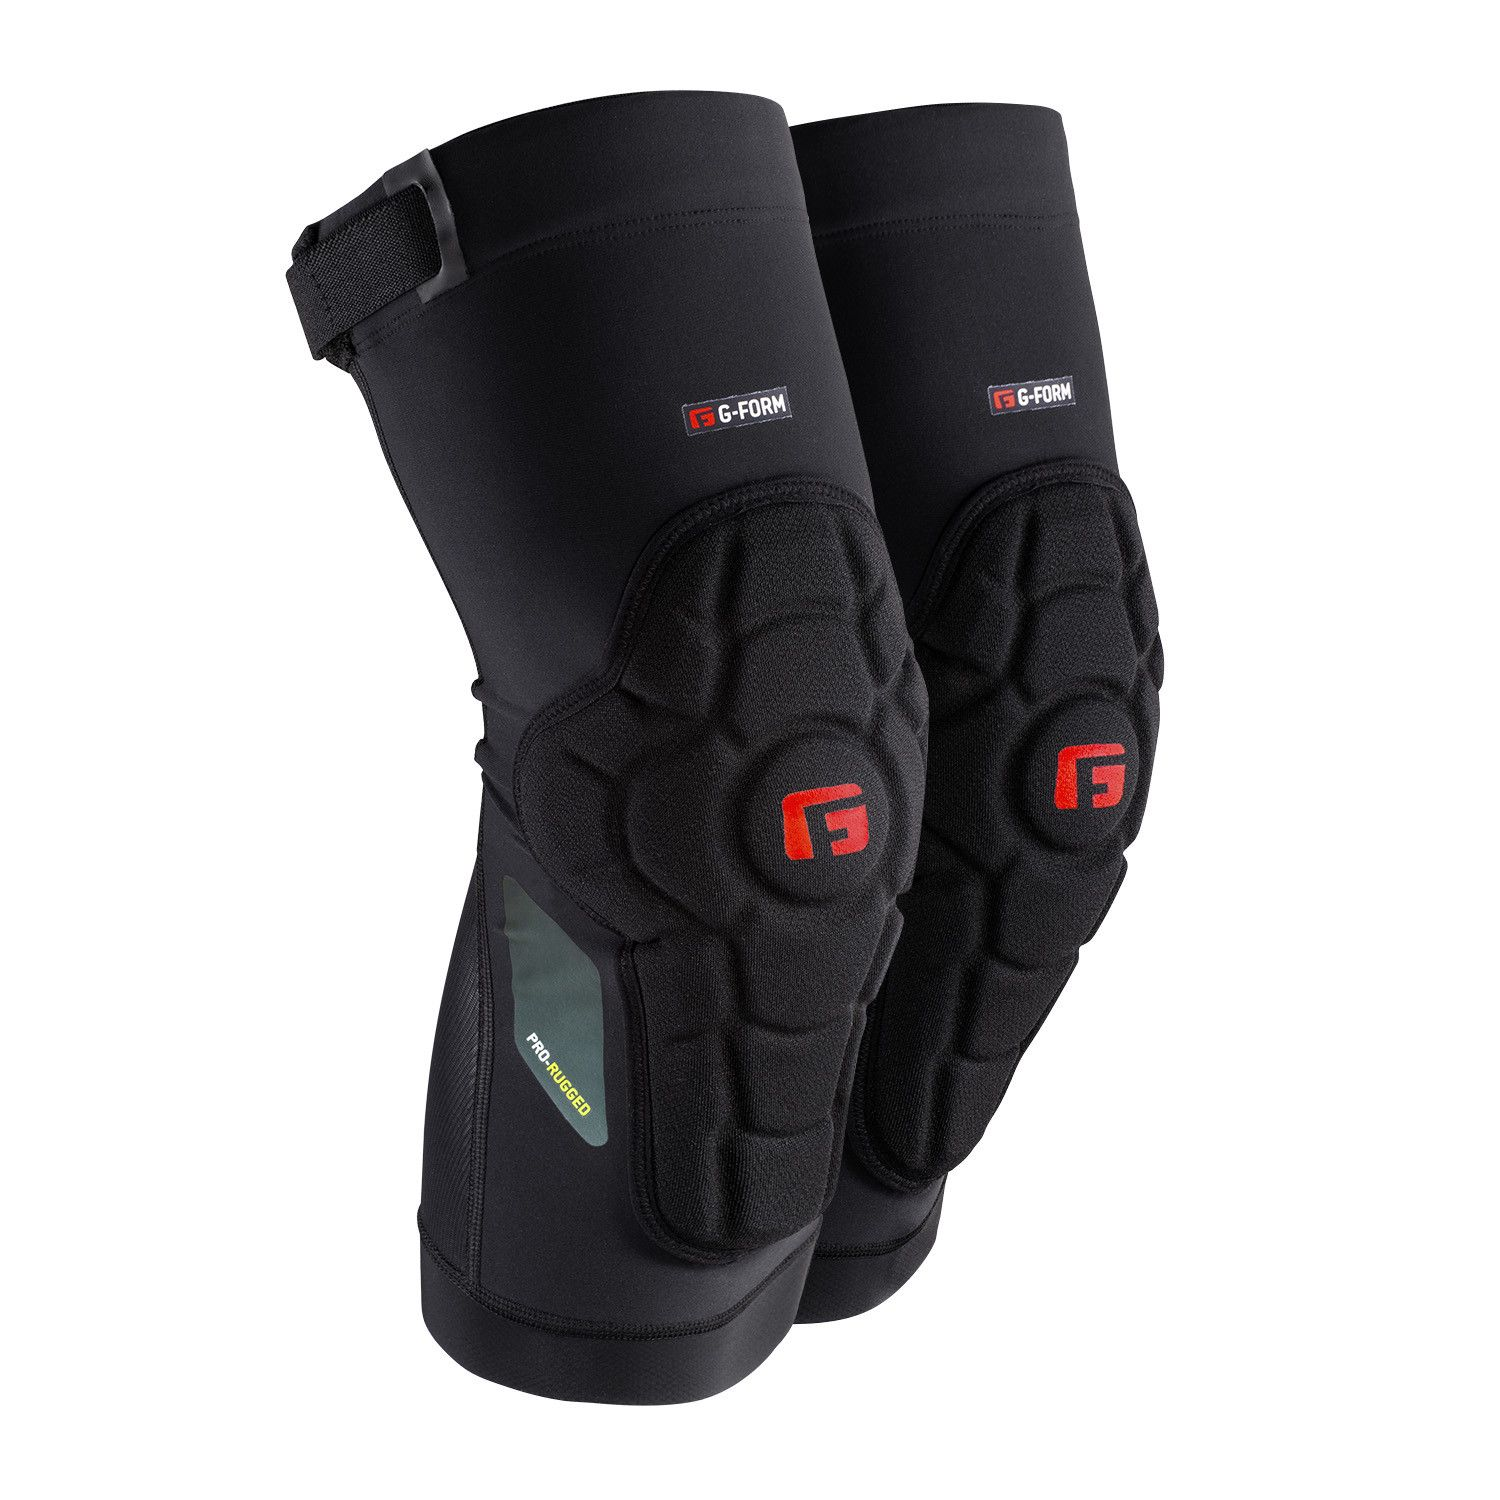 Charcoal Knee, Knee pads, Compression fabric